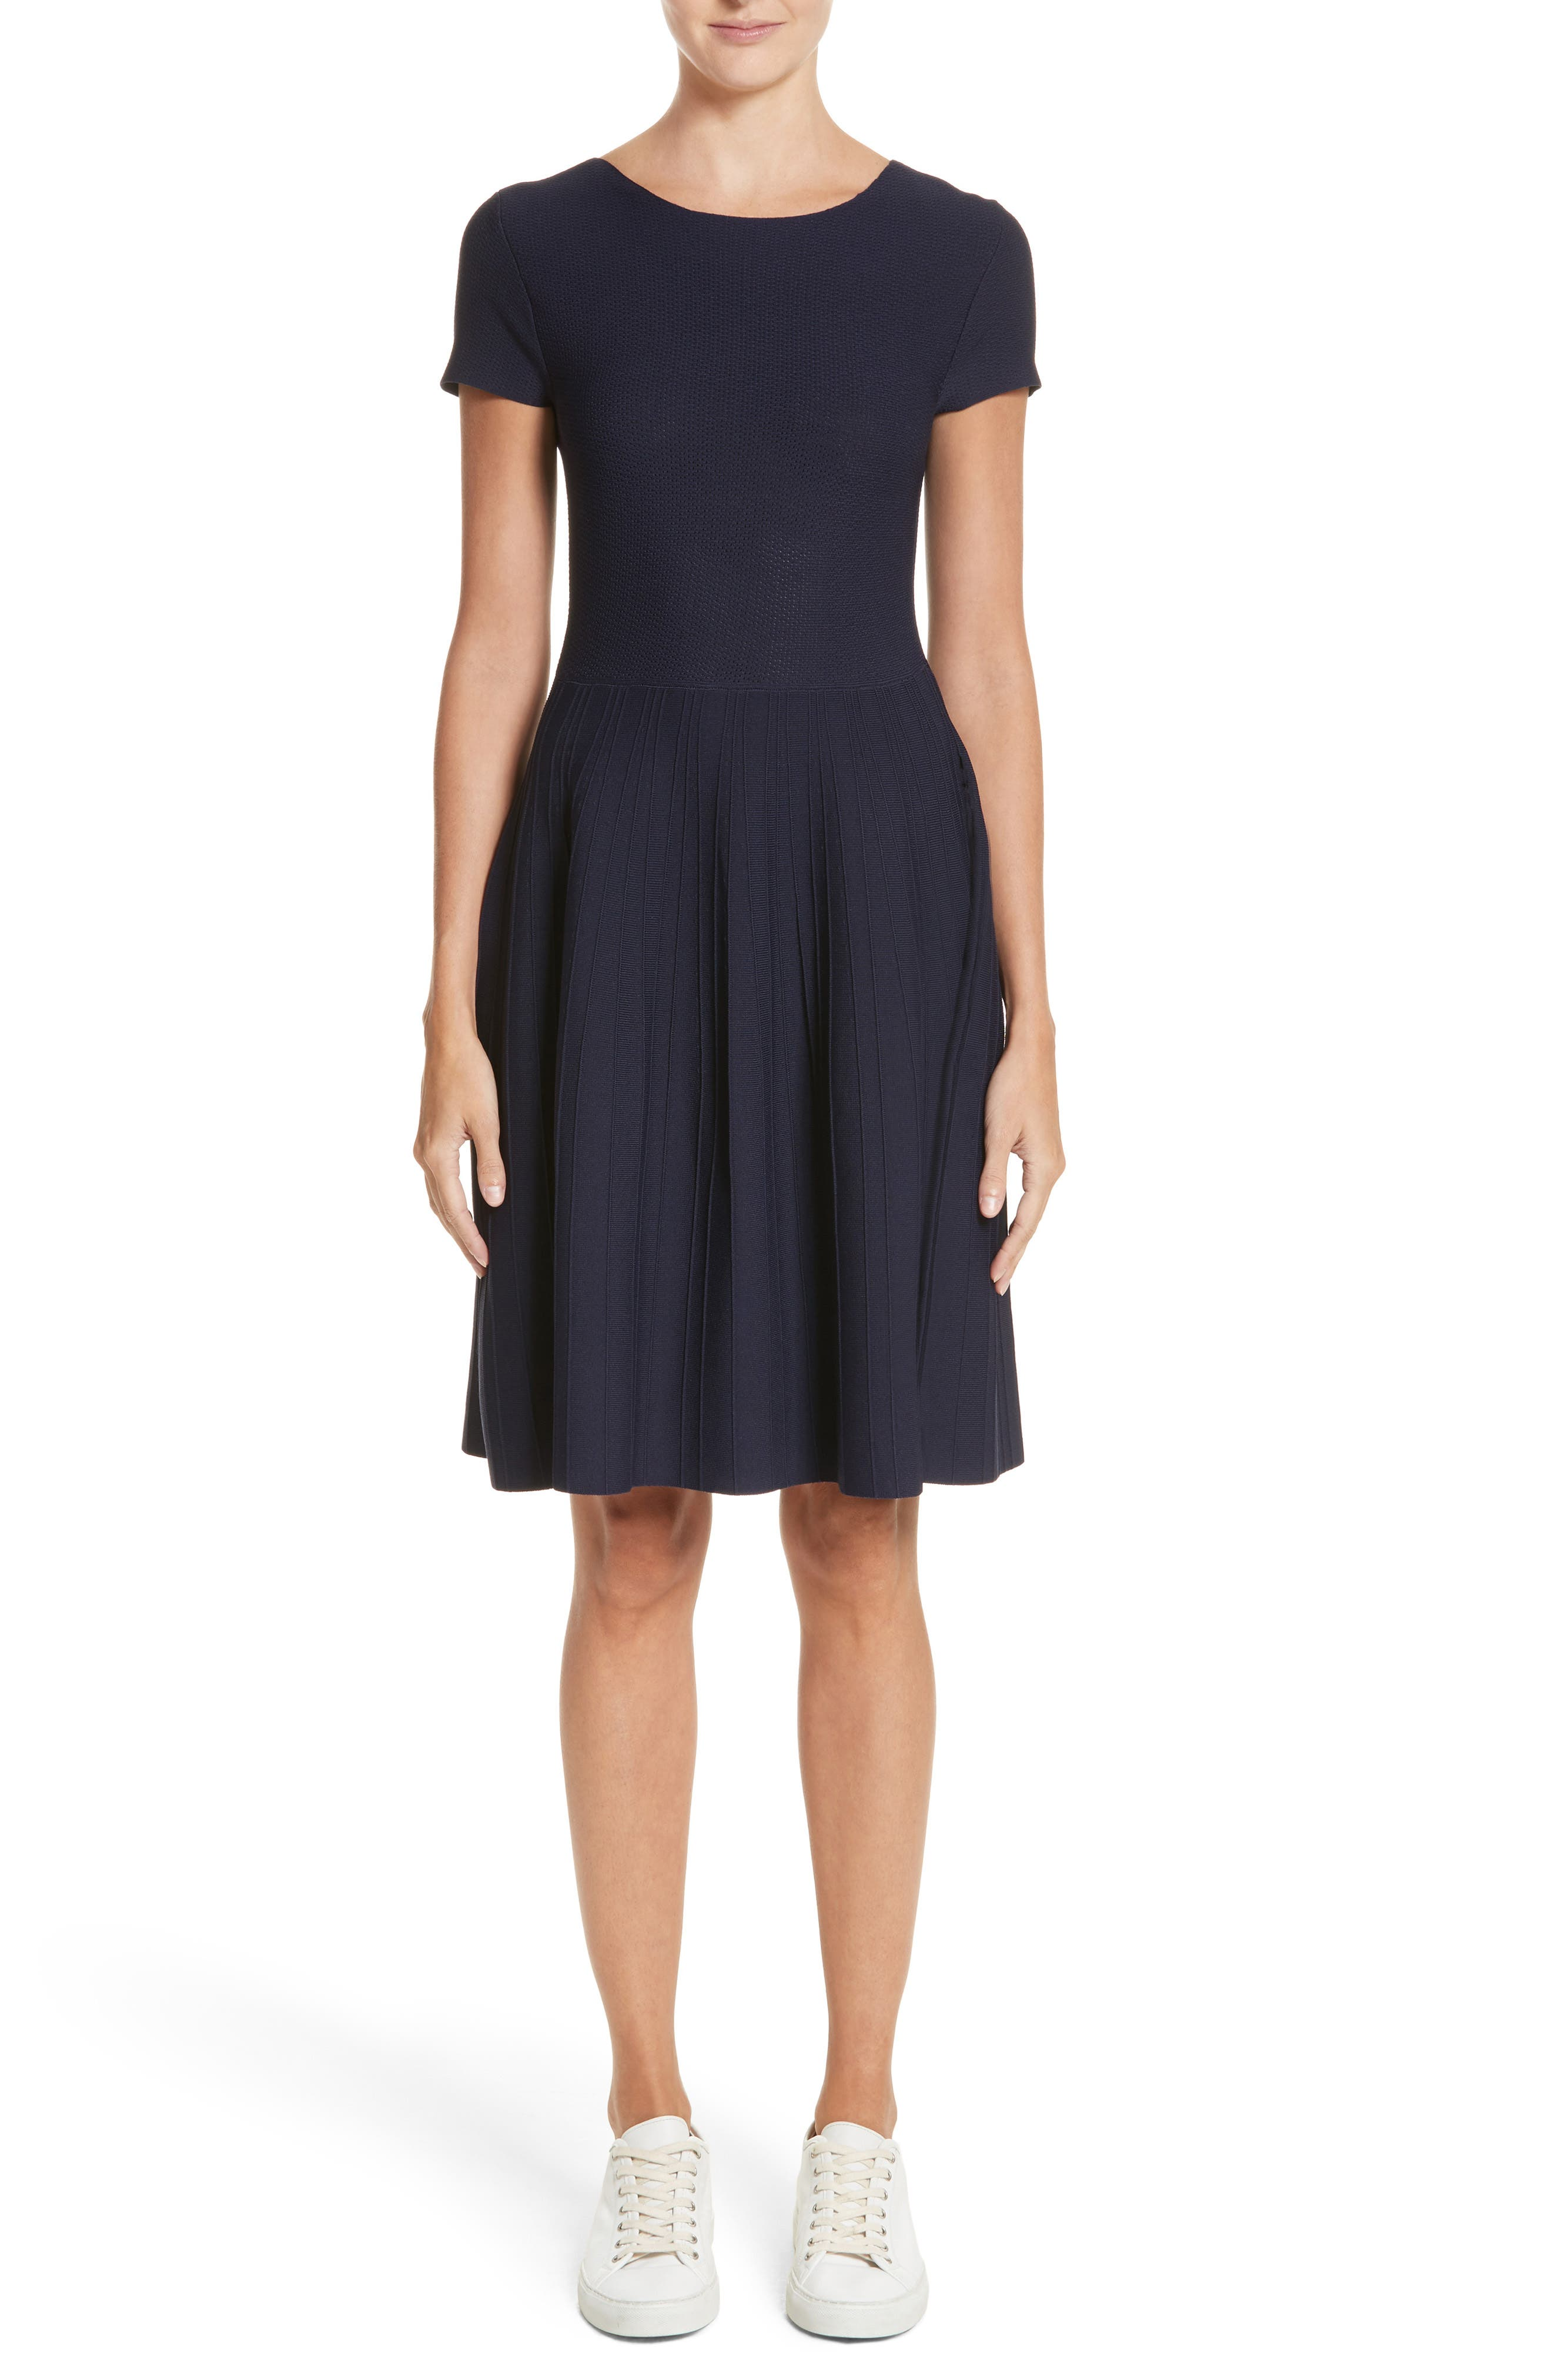 Alternate Image 1 Selected - Emporio Armani Knit Fit & Flare Dress